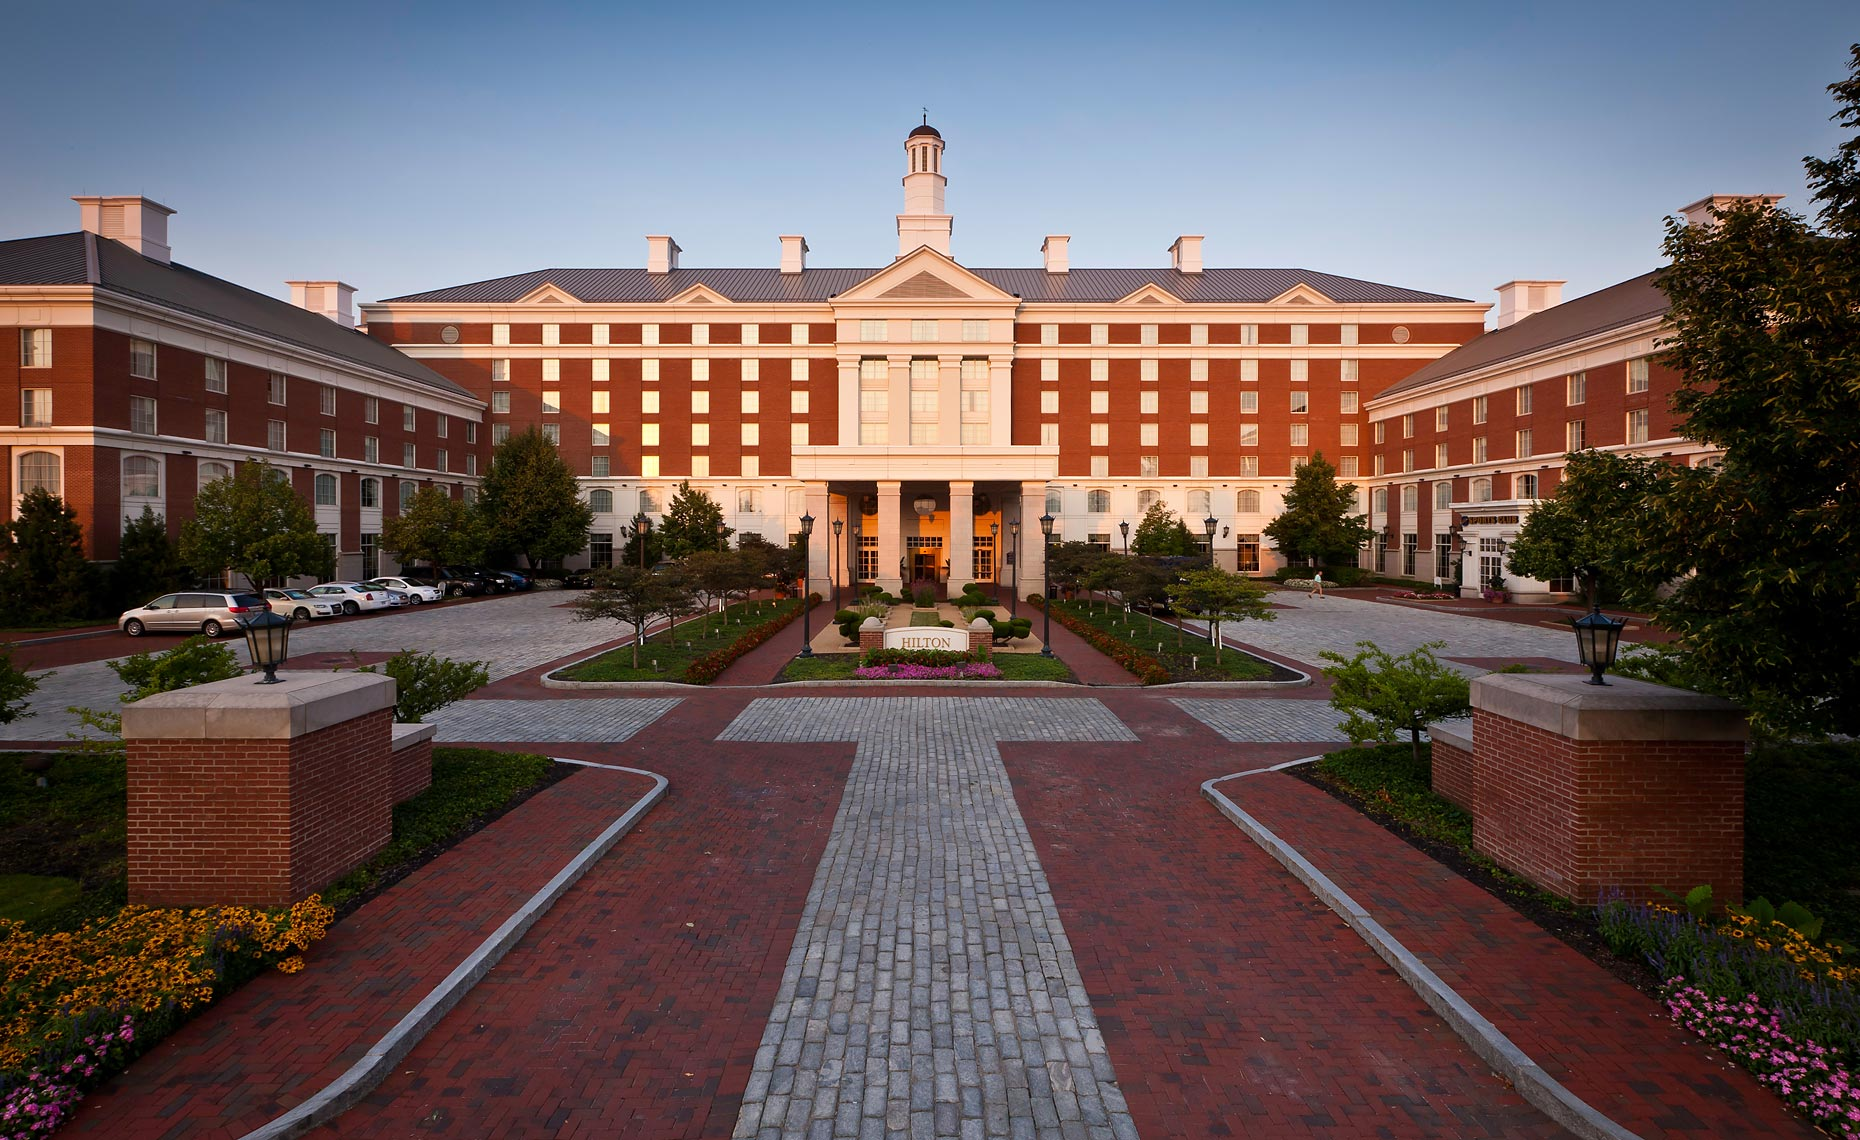 Exterior photograph of a luxury hotel resort by Charleston Beaufort South Carolina based architectural hotel and resort photographer Richard Steinberger